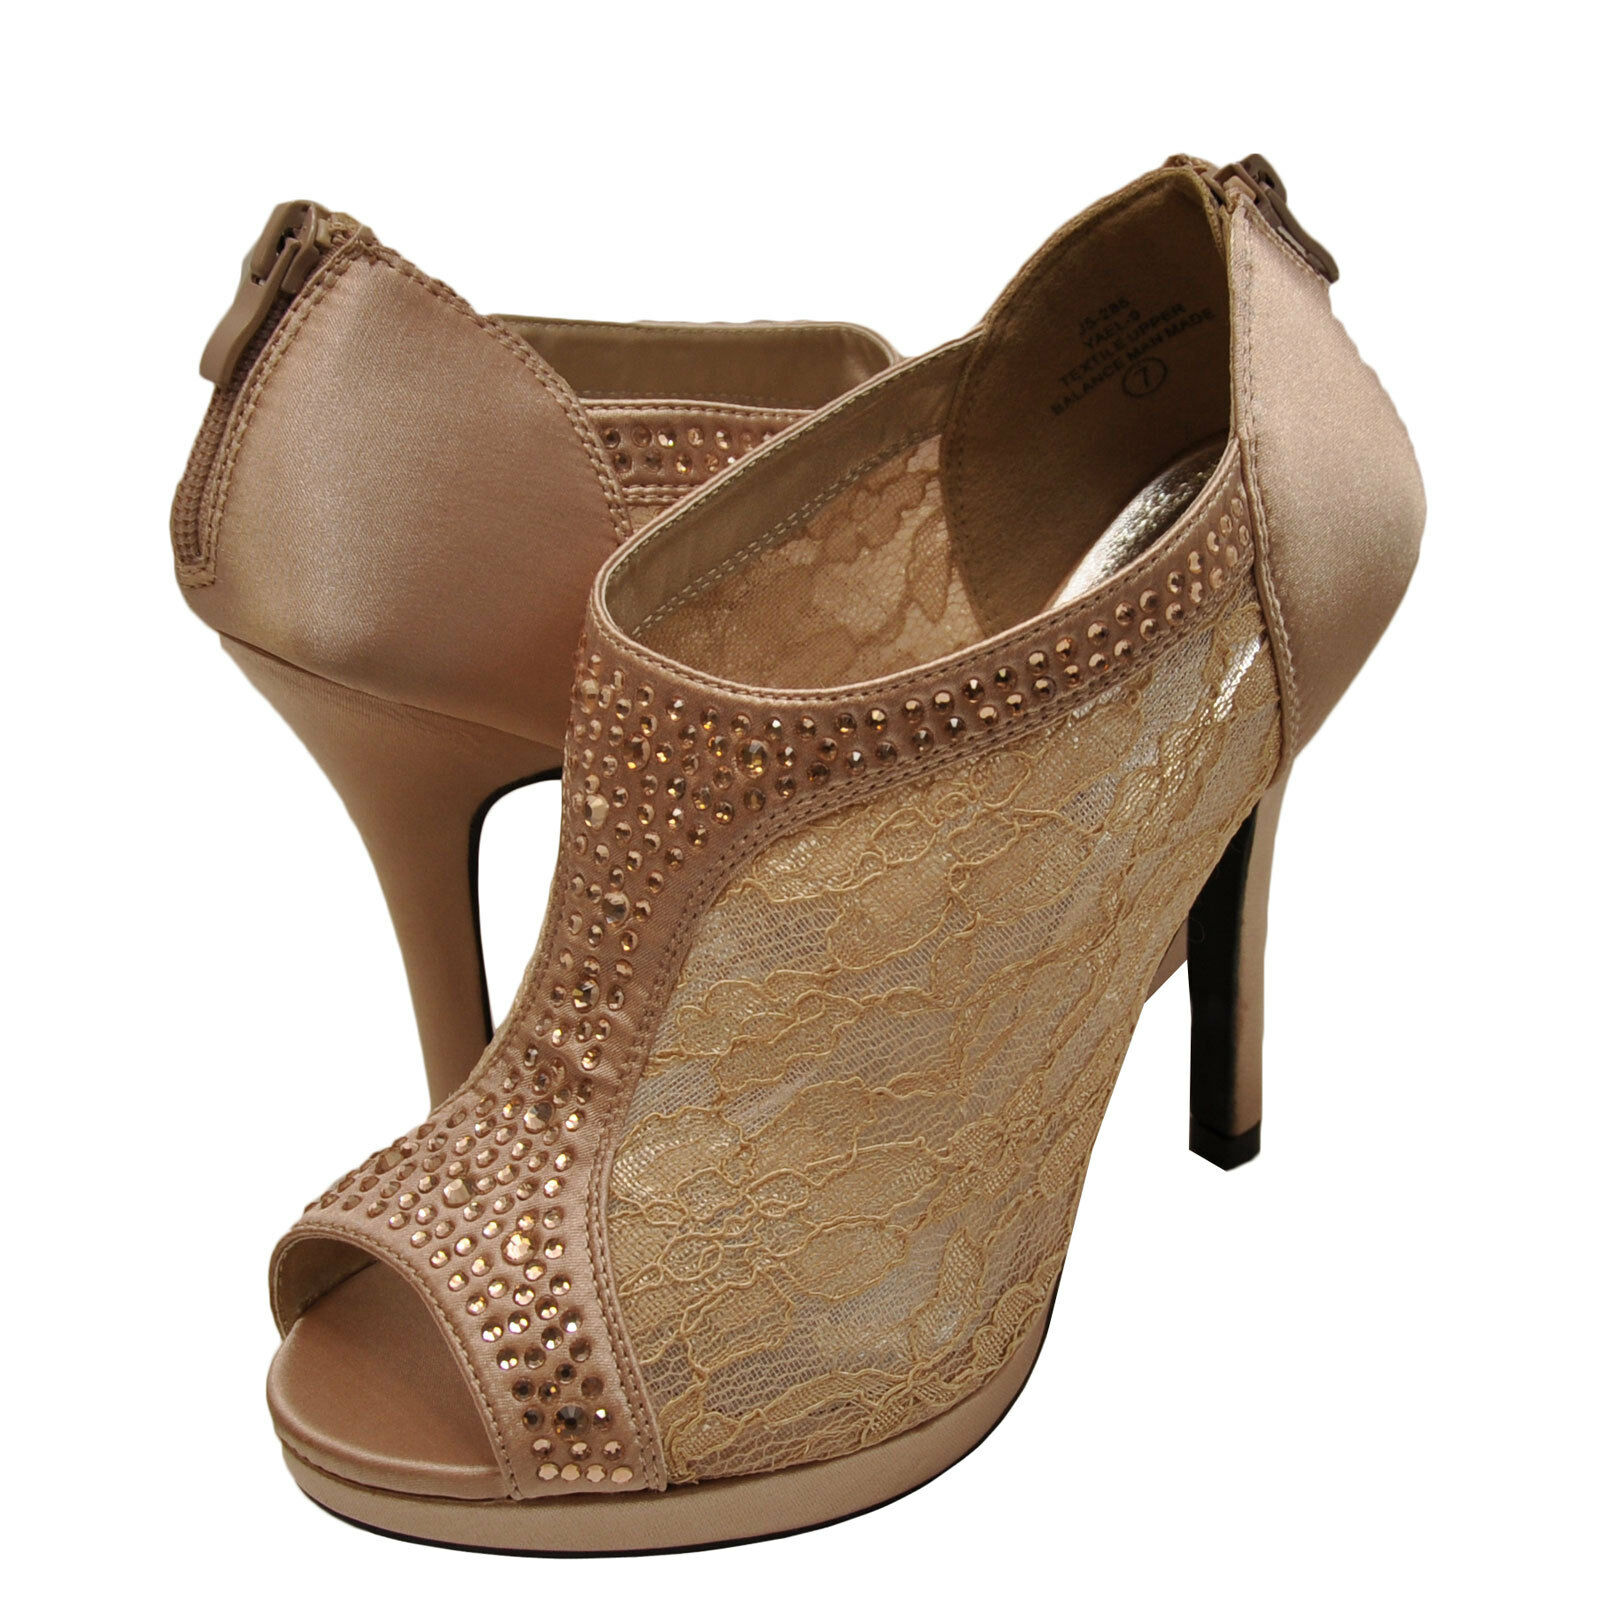 Womens shoes Blossom Yael 09 Embellished Peep Toe Lace Booties Nude New